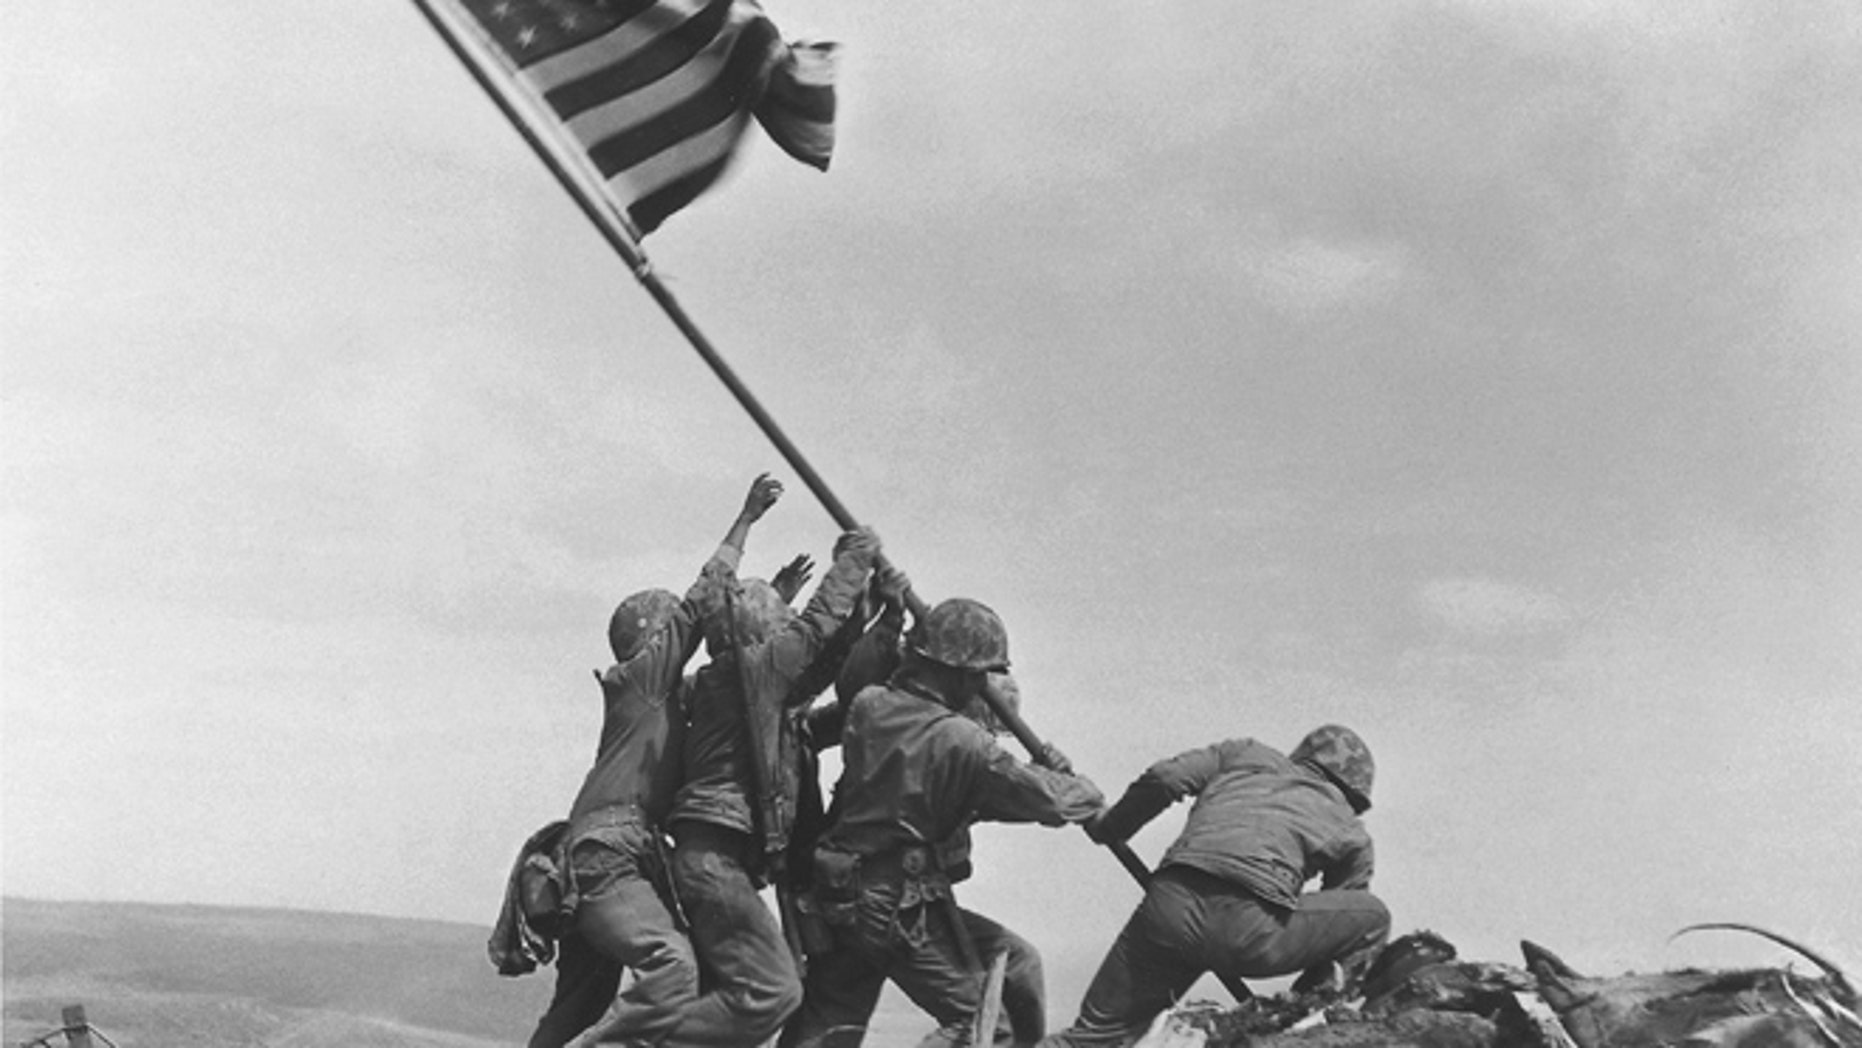 FILE - In this Feb 23, 1945 file photo, U.S. Marines of the 28th Regiment, 5th Division, raise the American flag atop Mt. Suribachi, Iwo Jima, Japan. (AP)